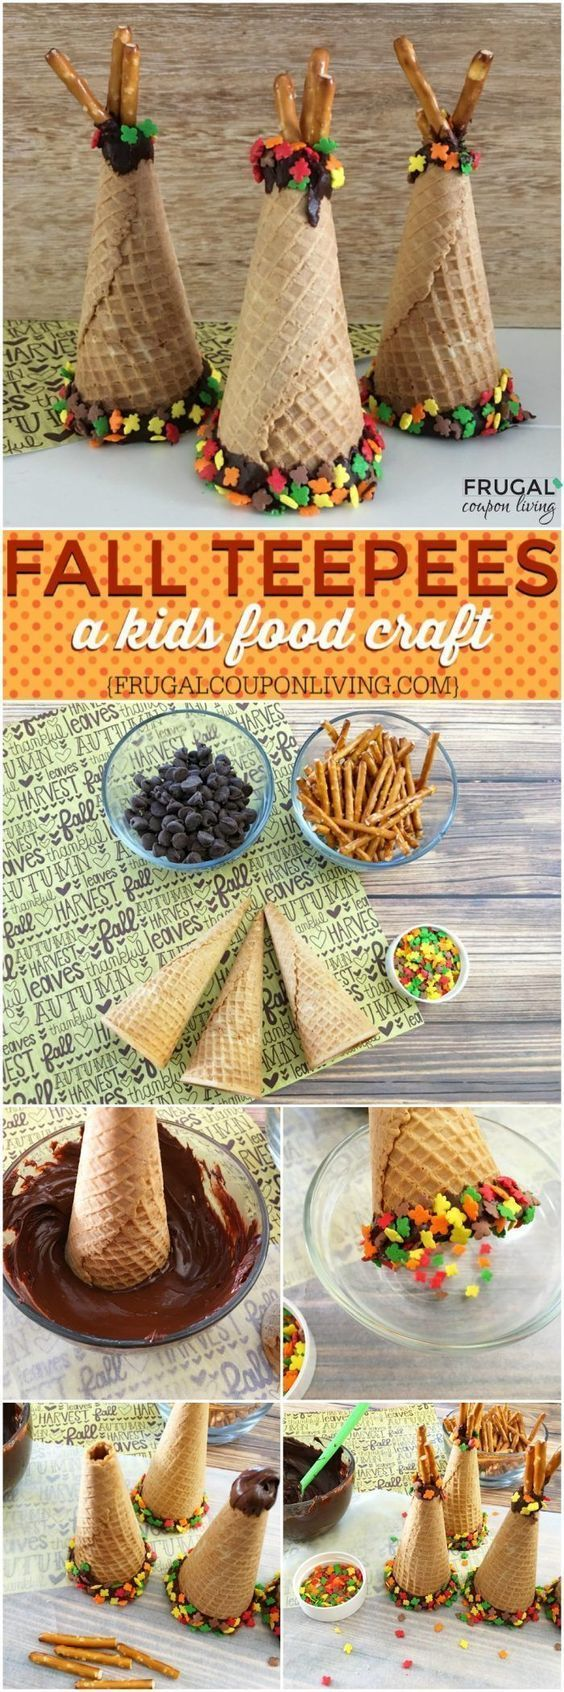 Fall Ice Cream Cone Teepees on Frugal Coupon Living. A fall kids food craft. We love this on the Kid's Thanksgiving Table but it also is fun in school when studying Native Americans. Fall Food Craft for Kids.